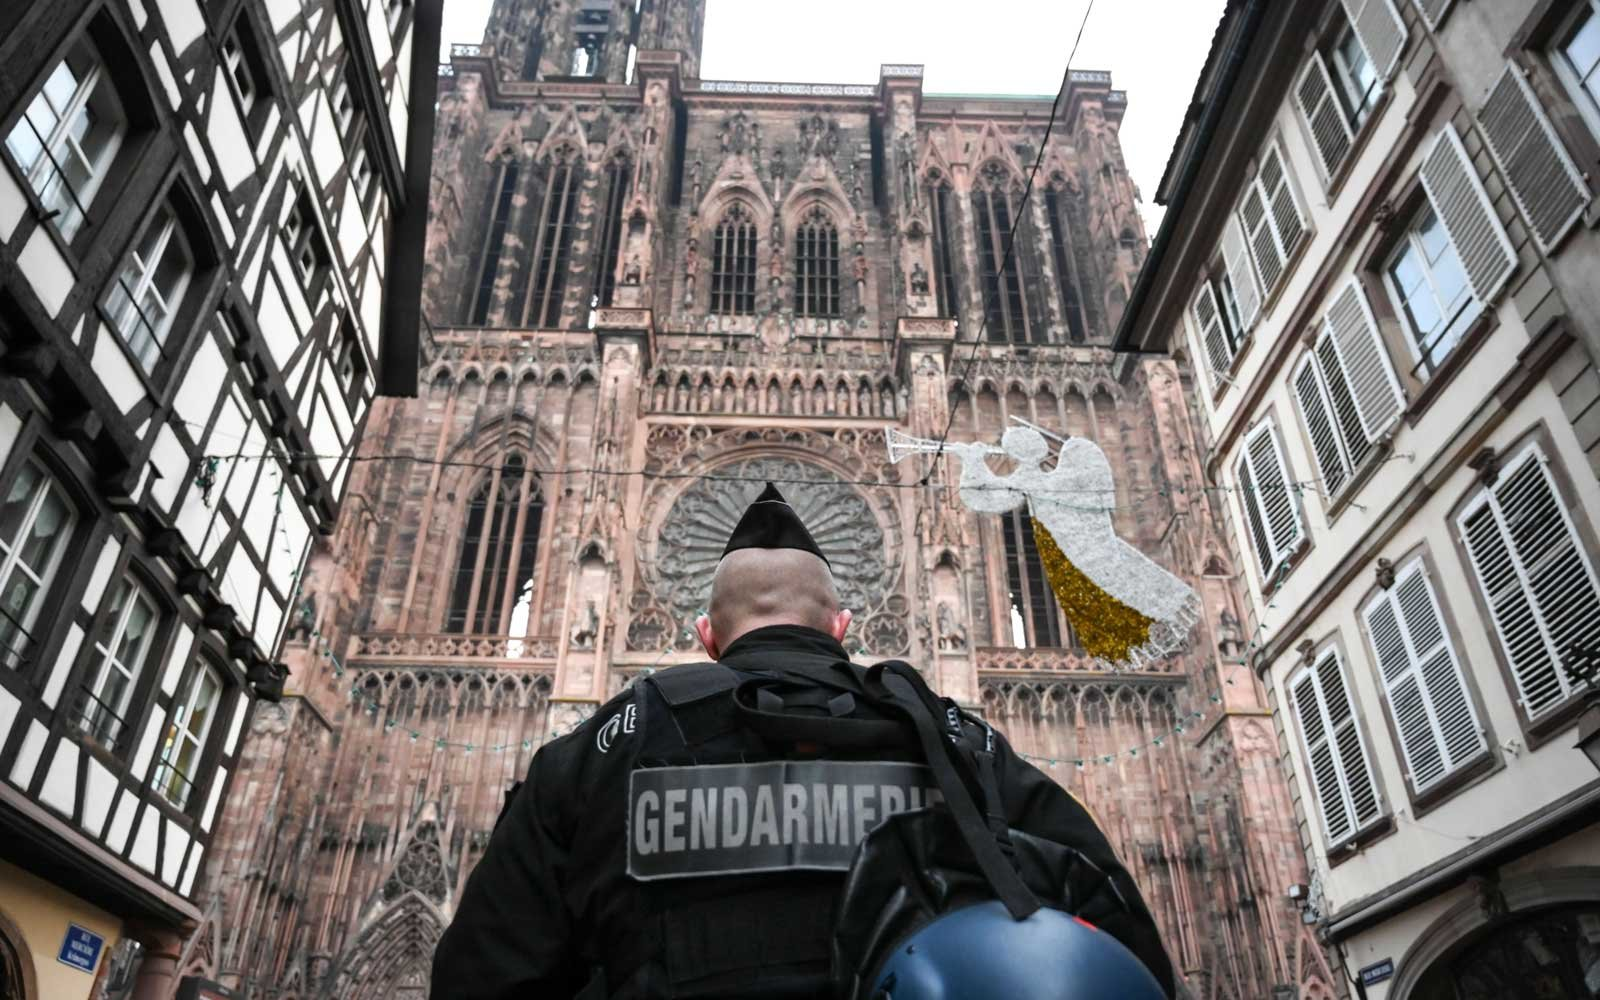 A French gendarme patrols in front of the Strasbourg cathedral while searches are conducted on December 12, 2018